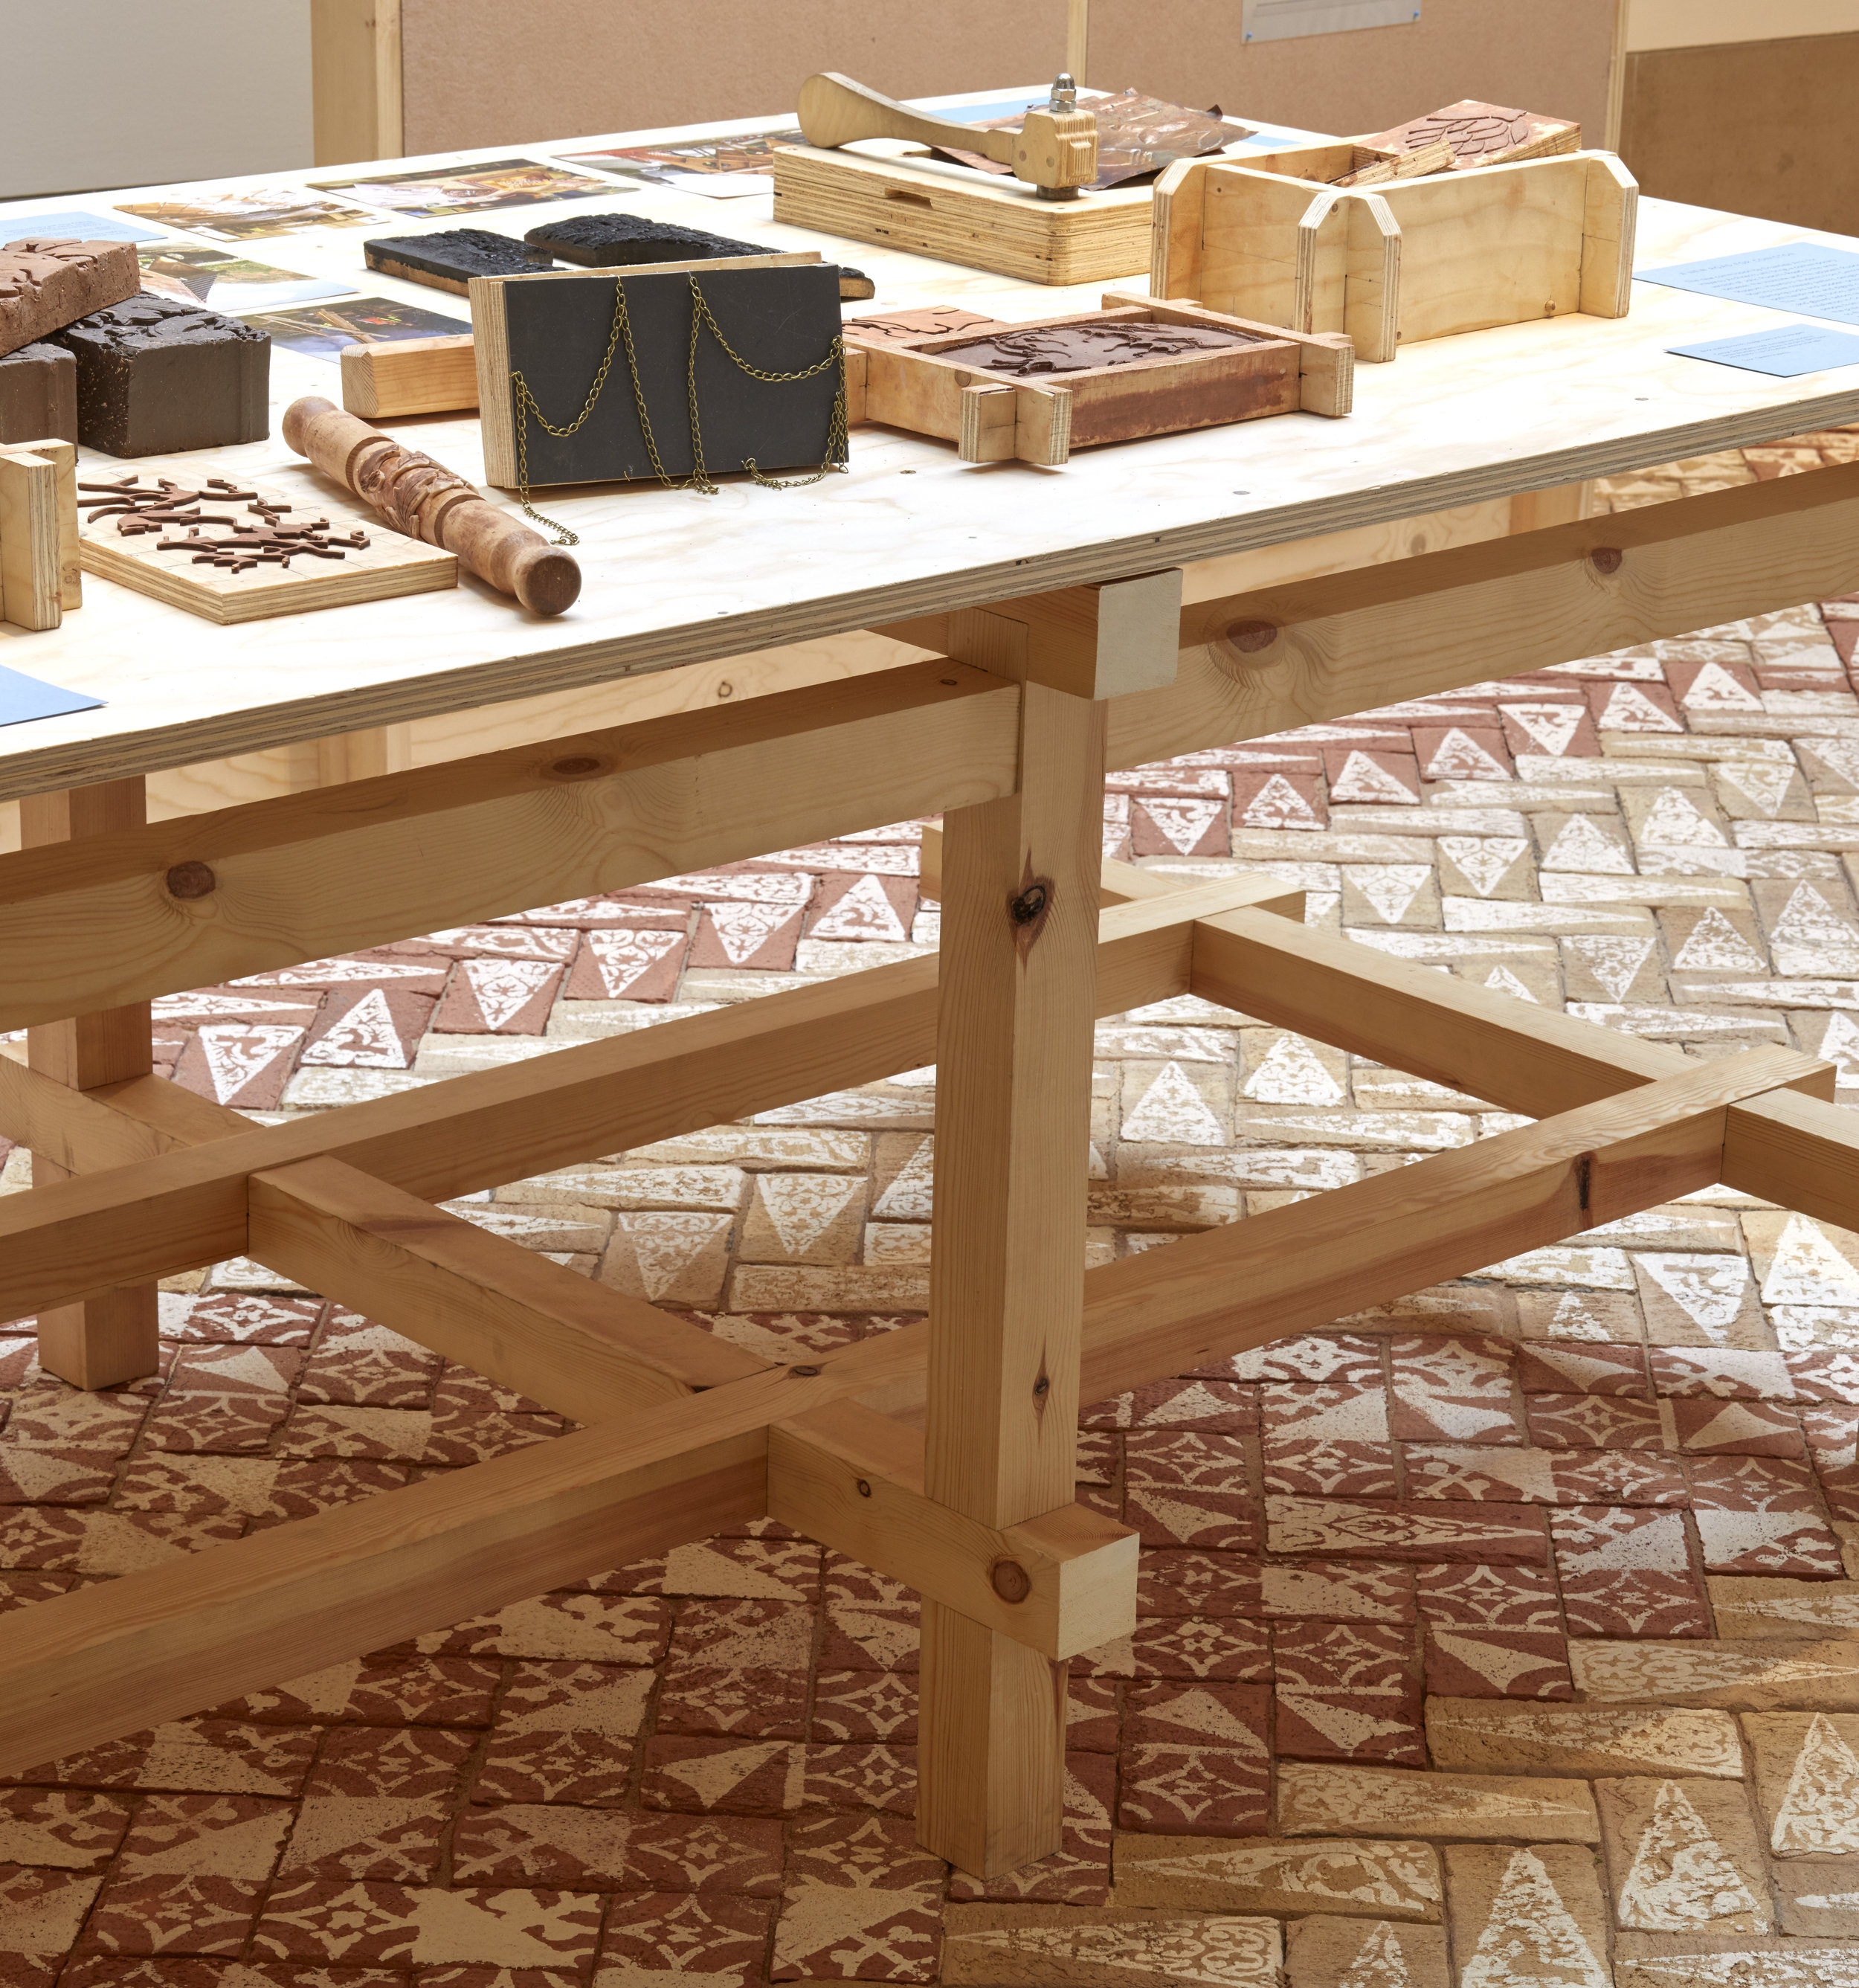 Everyone can make  by Takeshi Hayatsu, part of the RIBA's exhibition  Making It Happen: New Community Architecture  (image credit: Edmund Sumner)